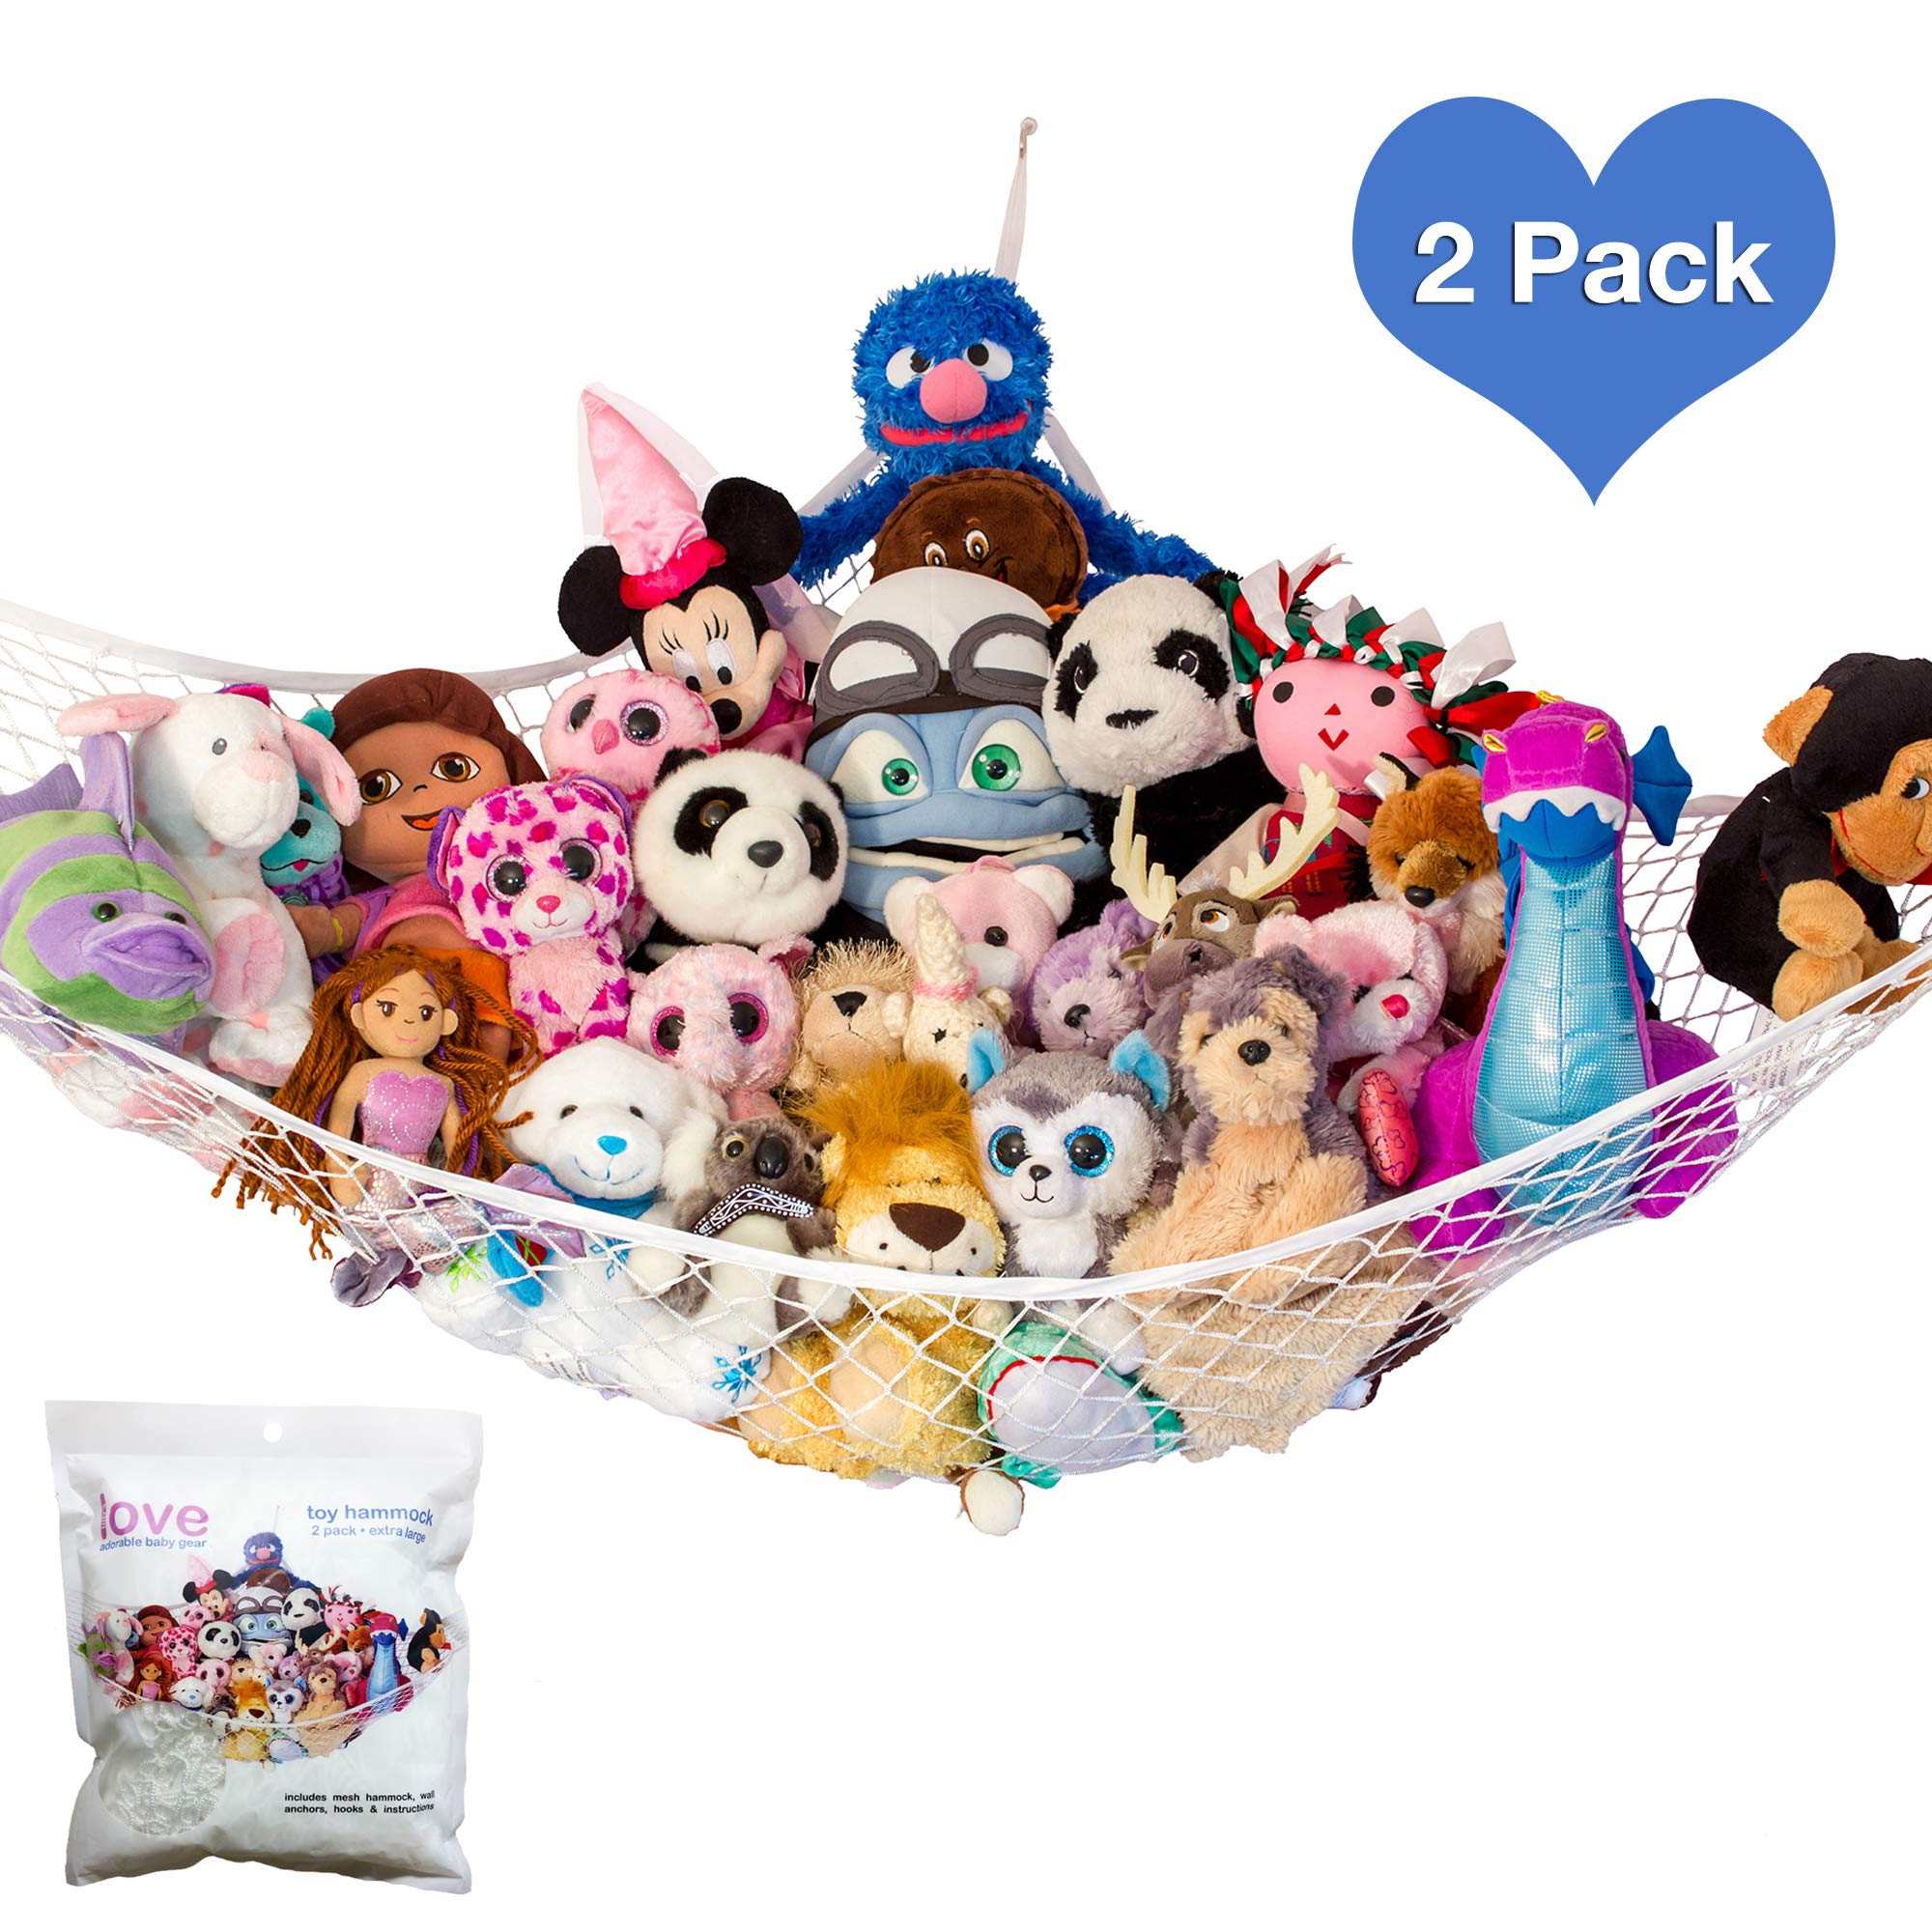 Lillys Love Stuffed Animal Storage Hammock - Large Pack 2 ''STUFFIE PARTY HAMMOCK'' Large by